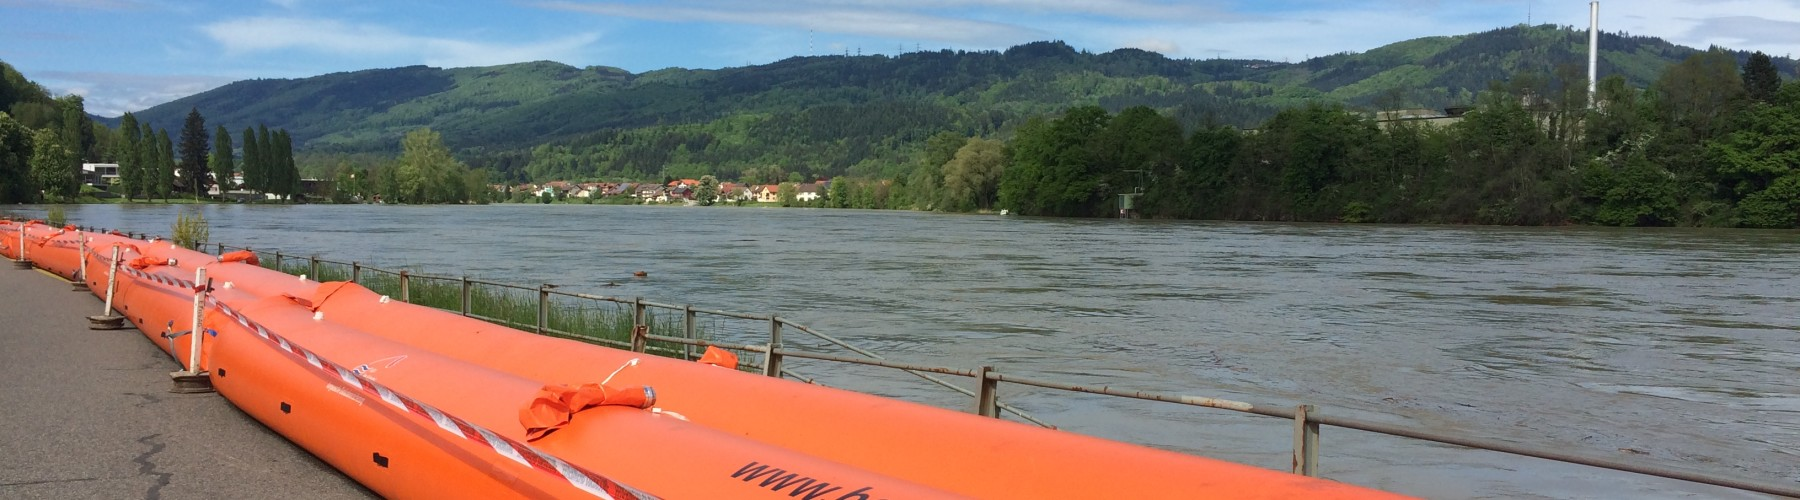 Hochwasser in Wallbach